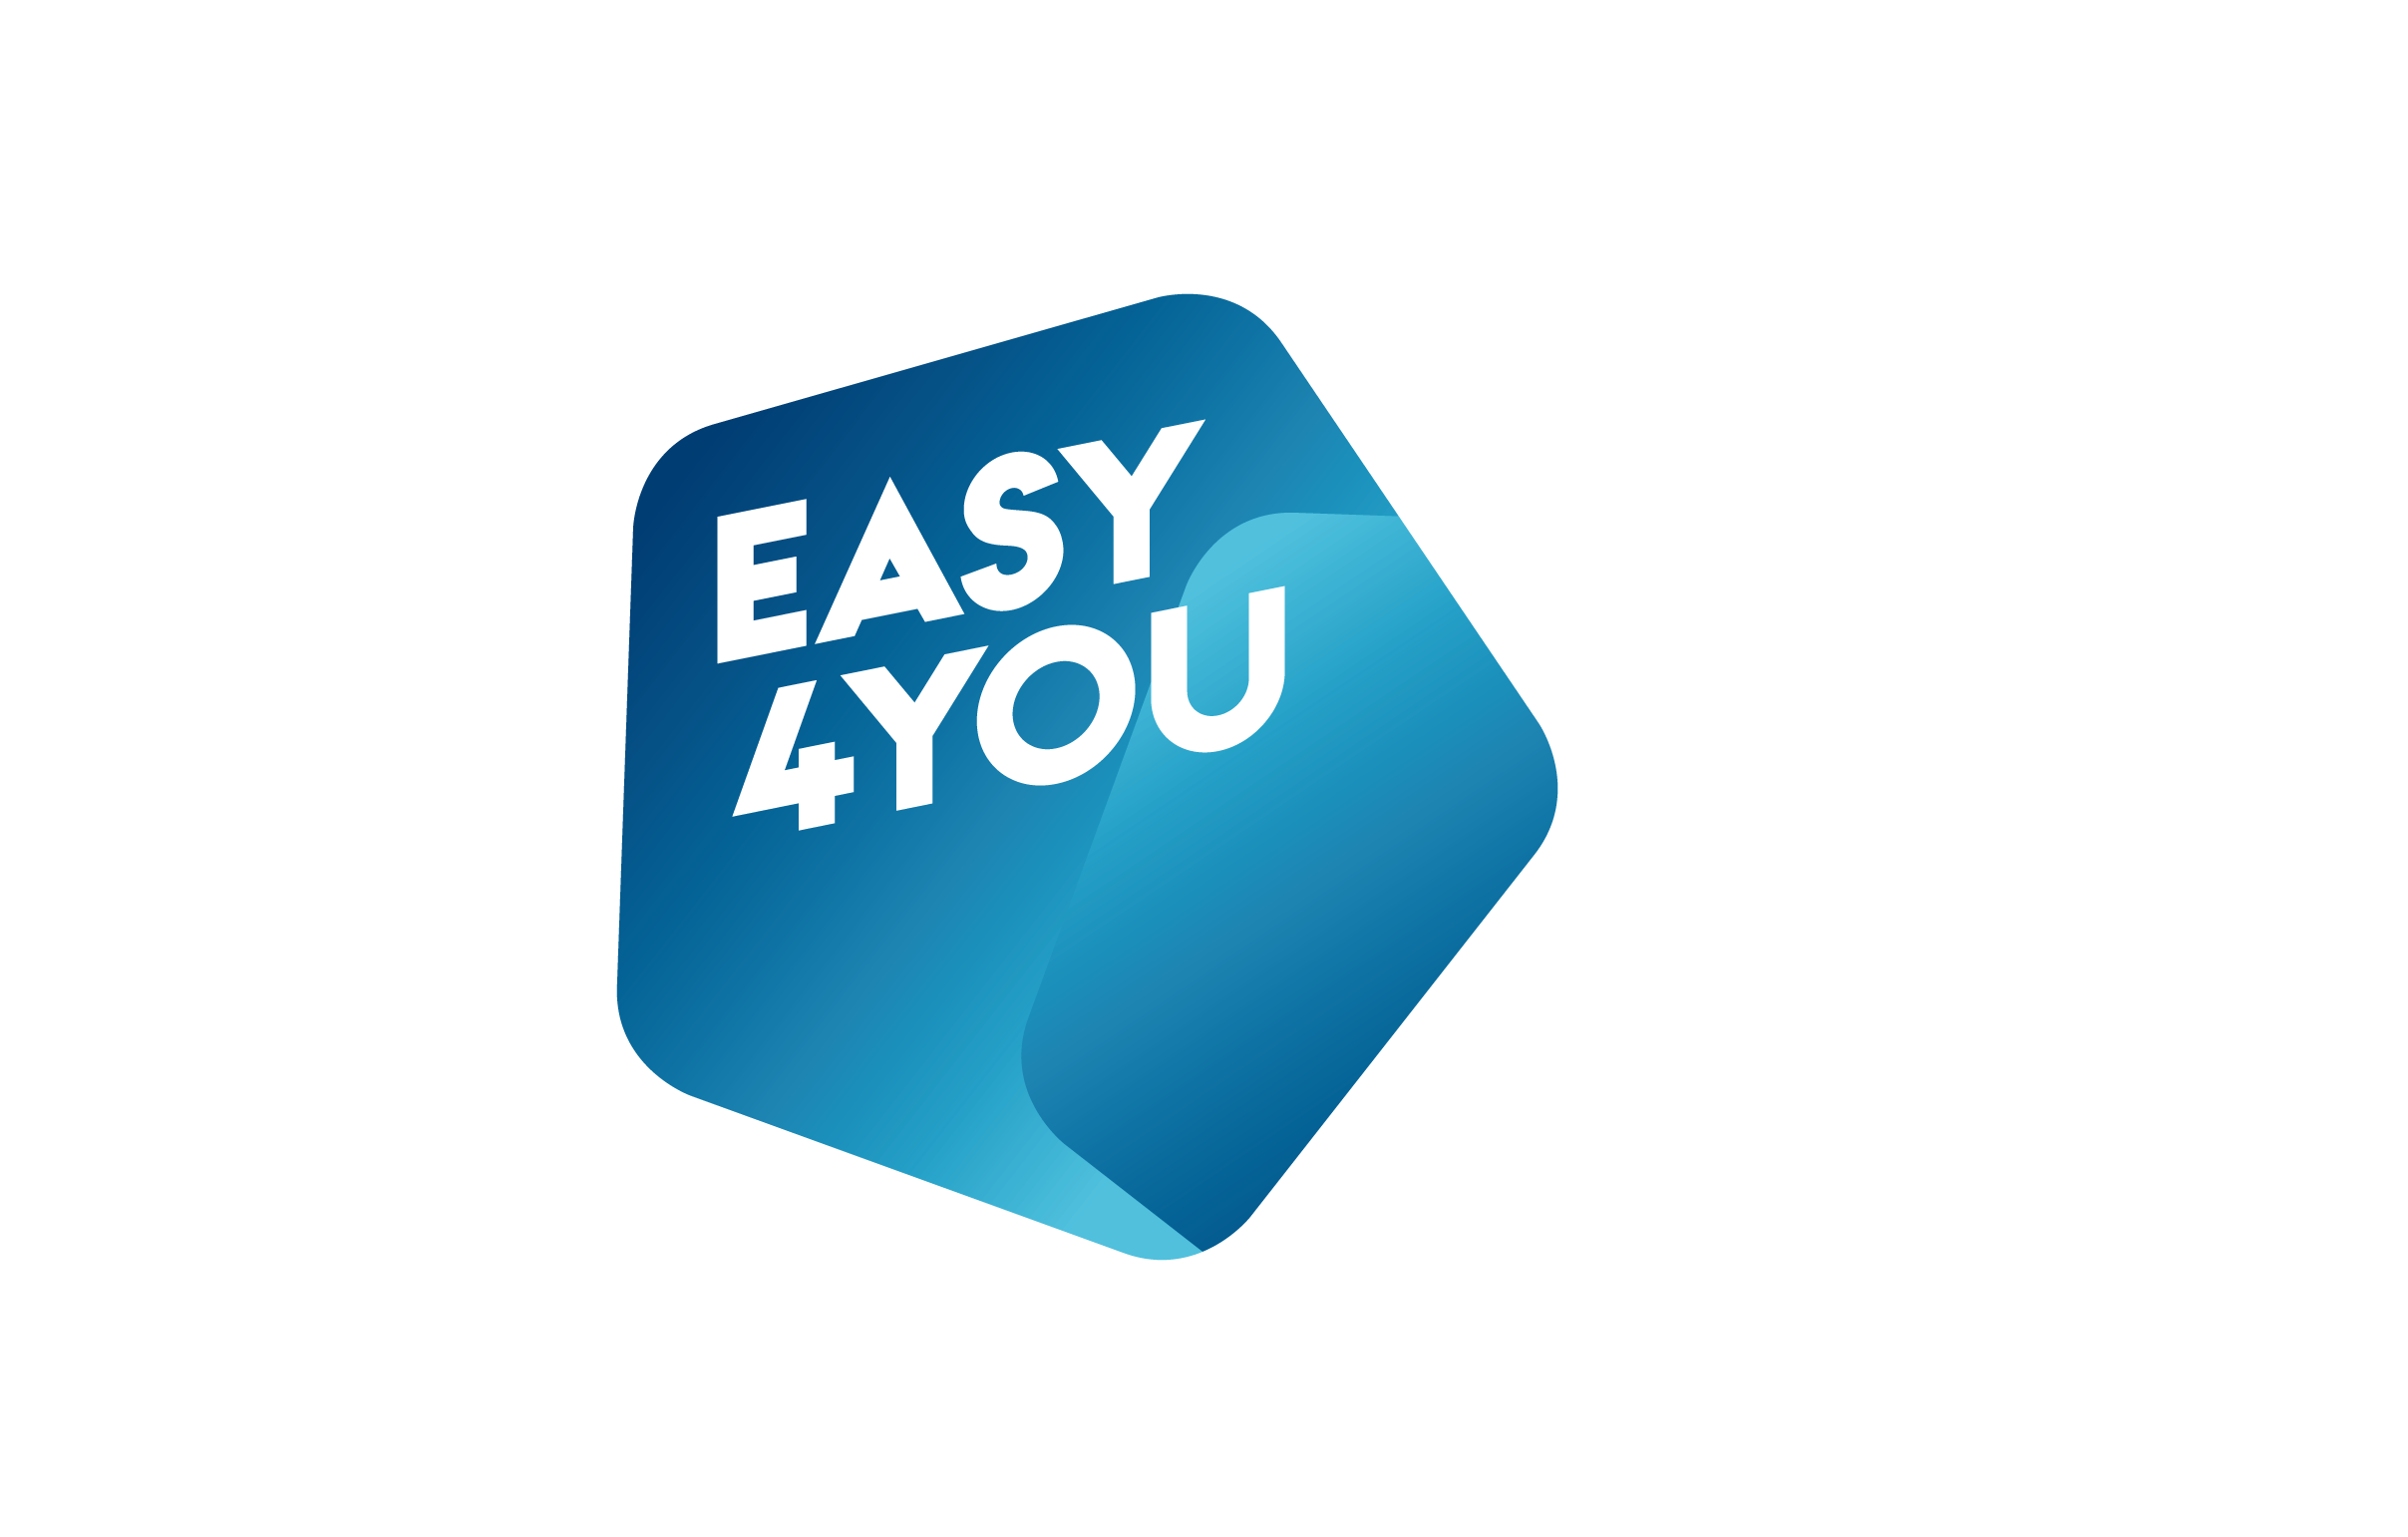 Charge card logo of Easy 4 You